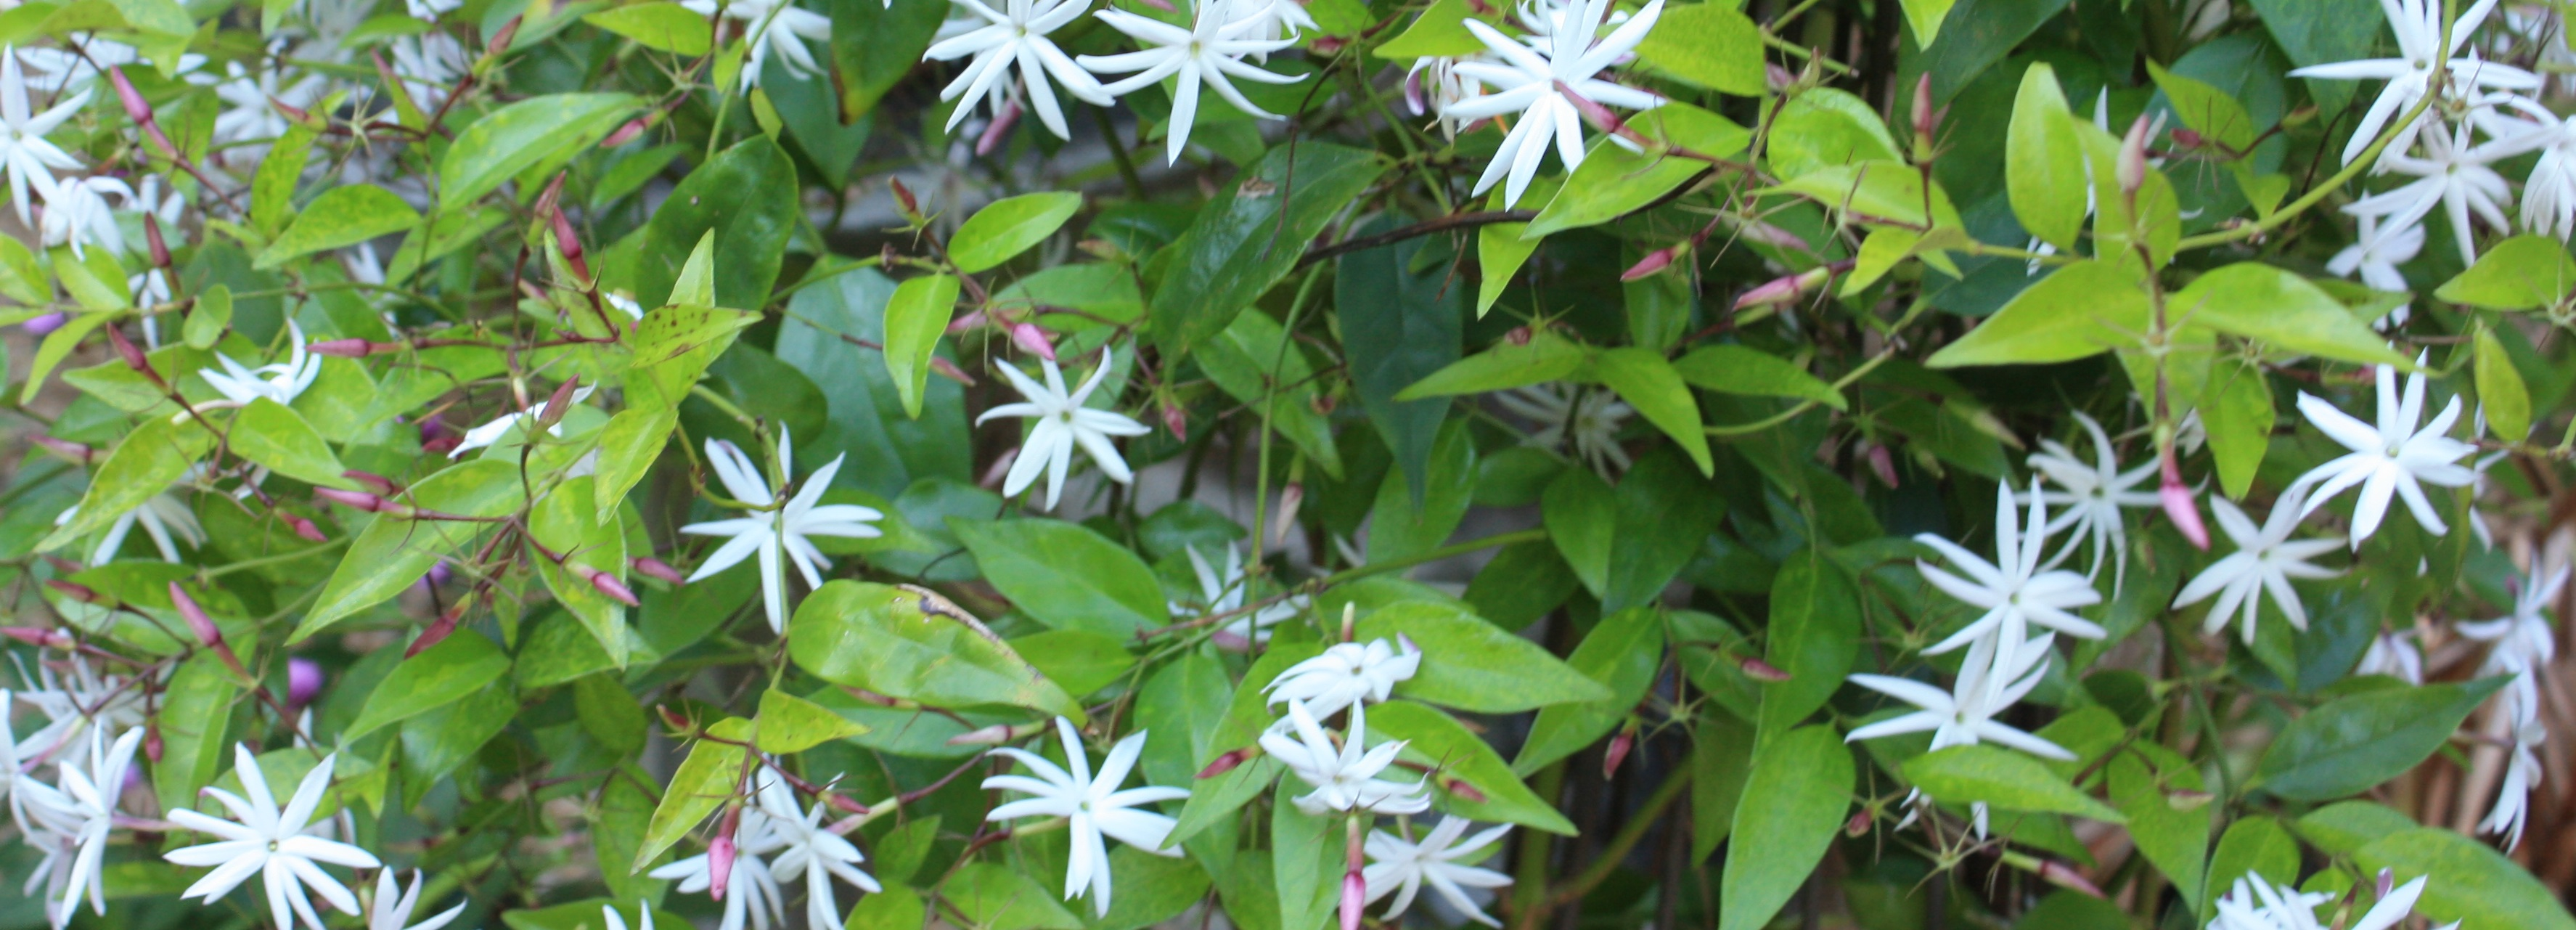 Jasmine plant with white flowers